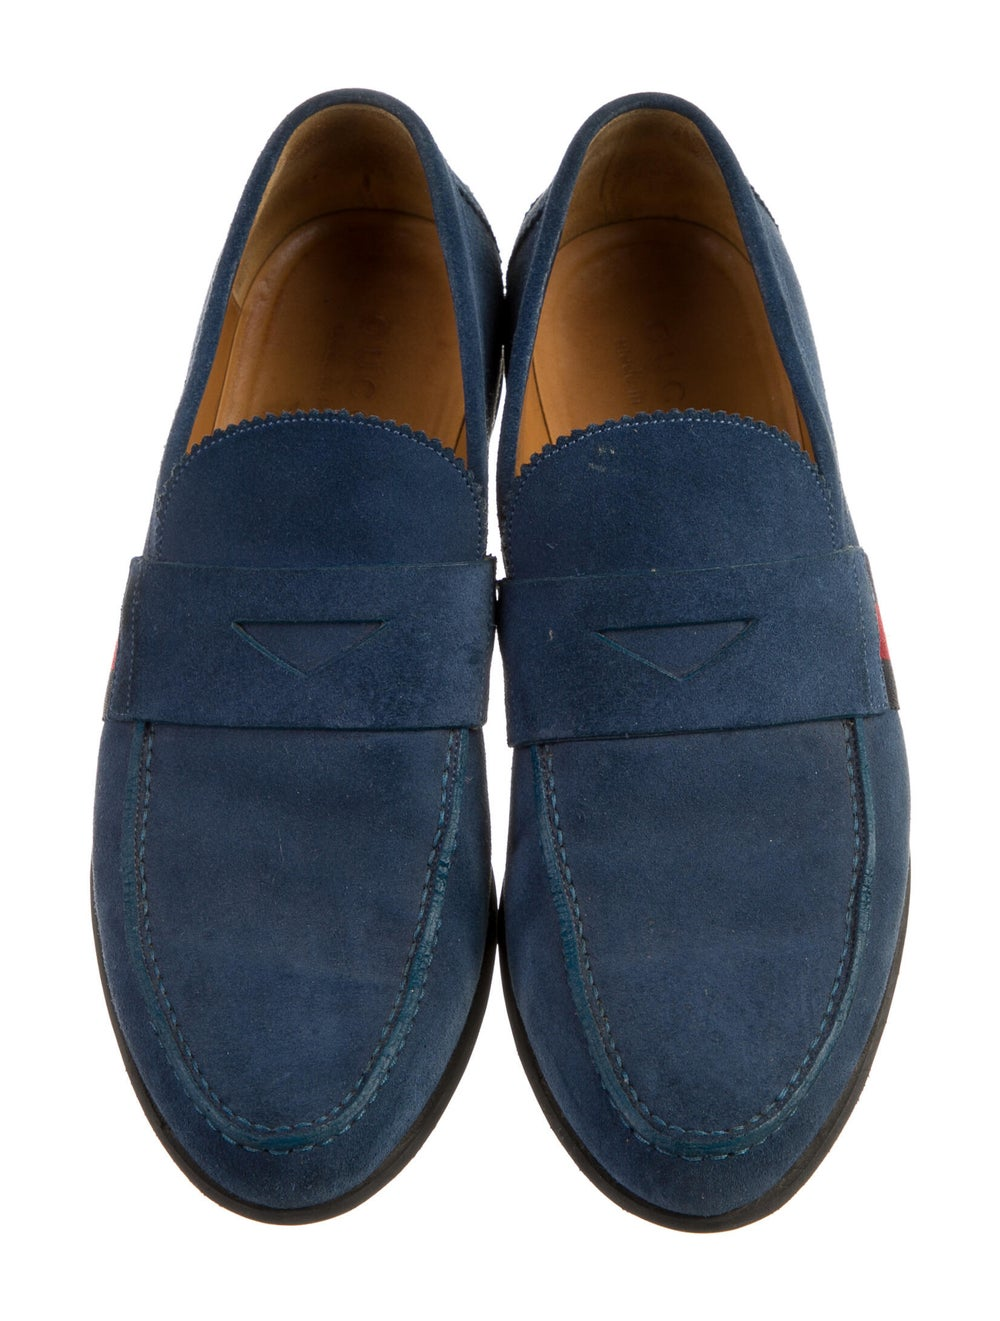 Gucci Suede Colorblock Pattern Loafers Blue - image 3